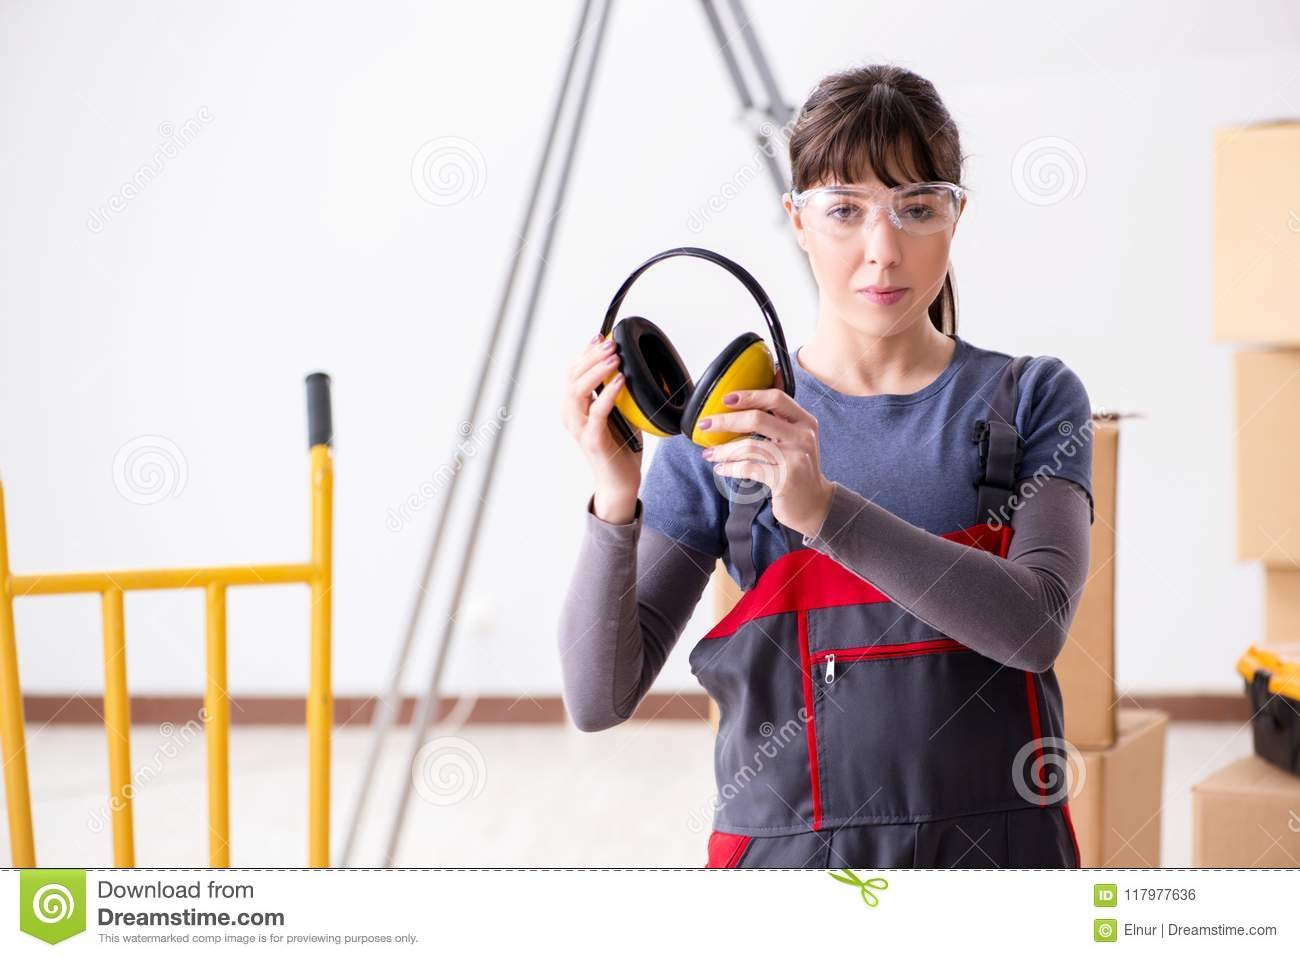 The woman contractor worker with noise cancelling headphones